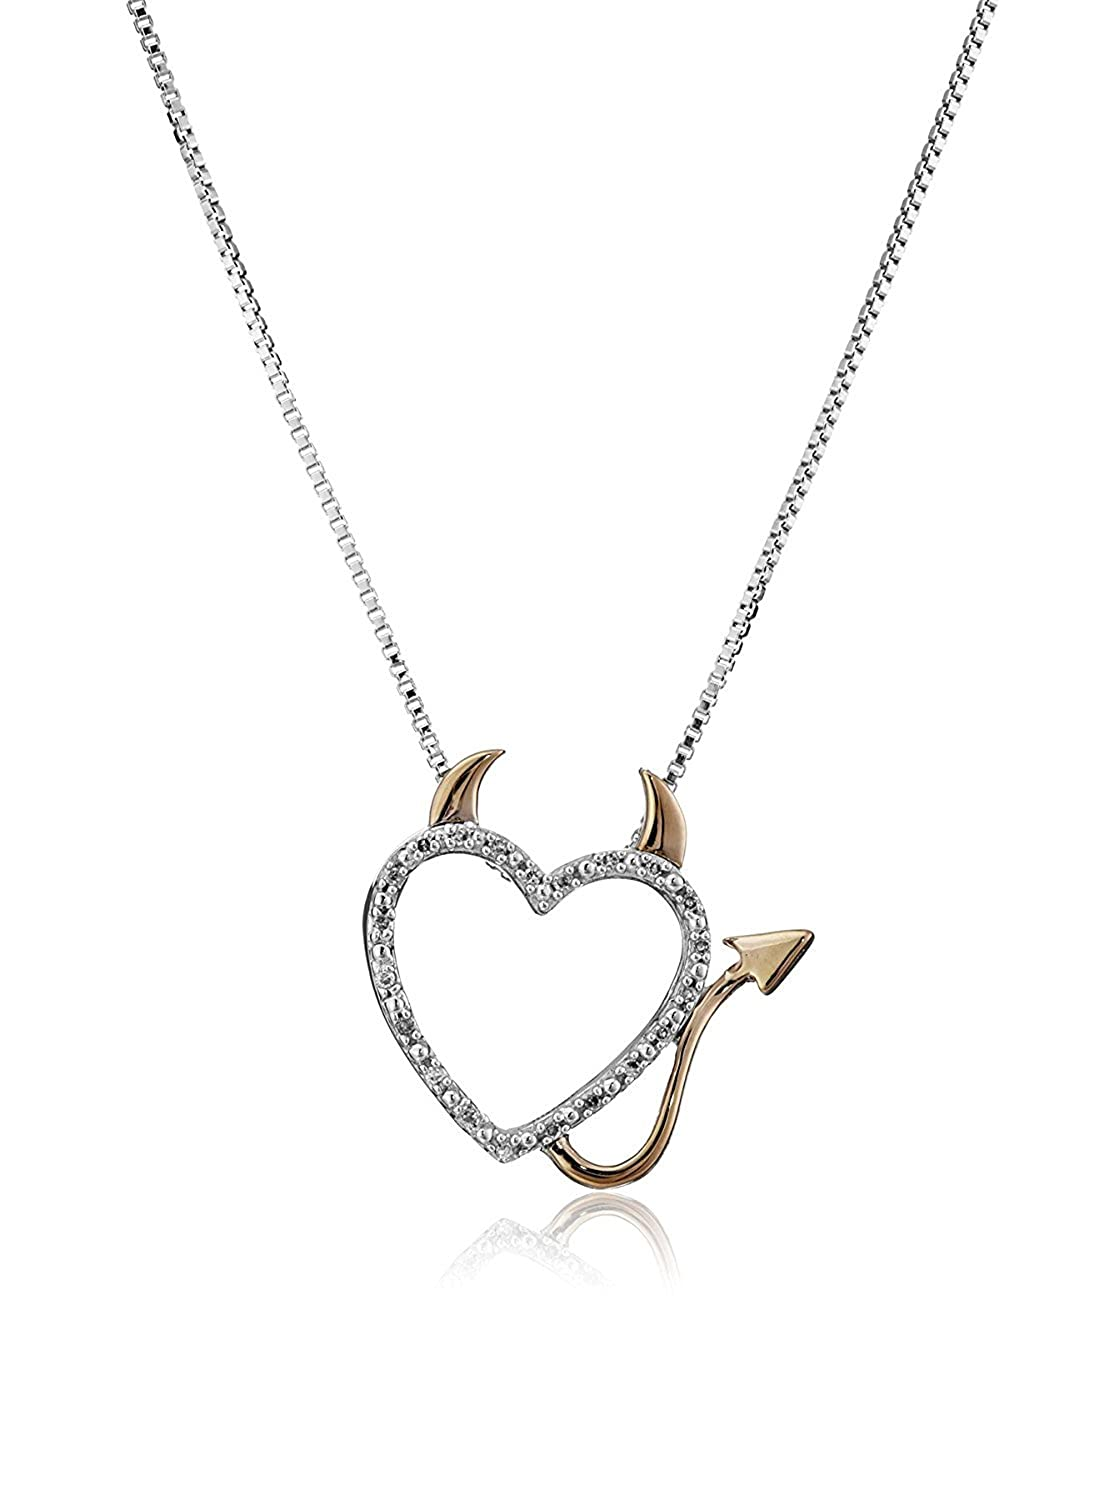 Gorgeous Devil Heart Necklace - Charming Naughty Devil Heart Pendant Necklace for Women Luvalti Luvalti-10